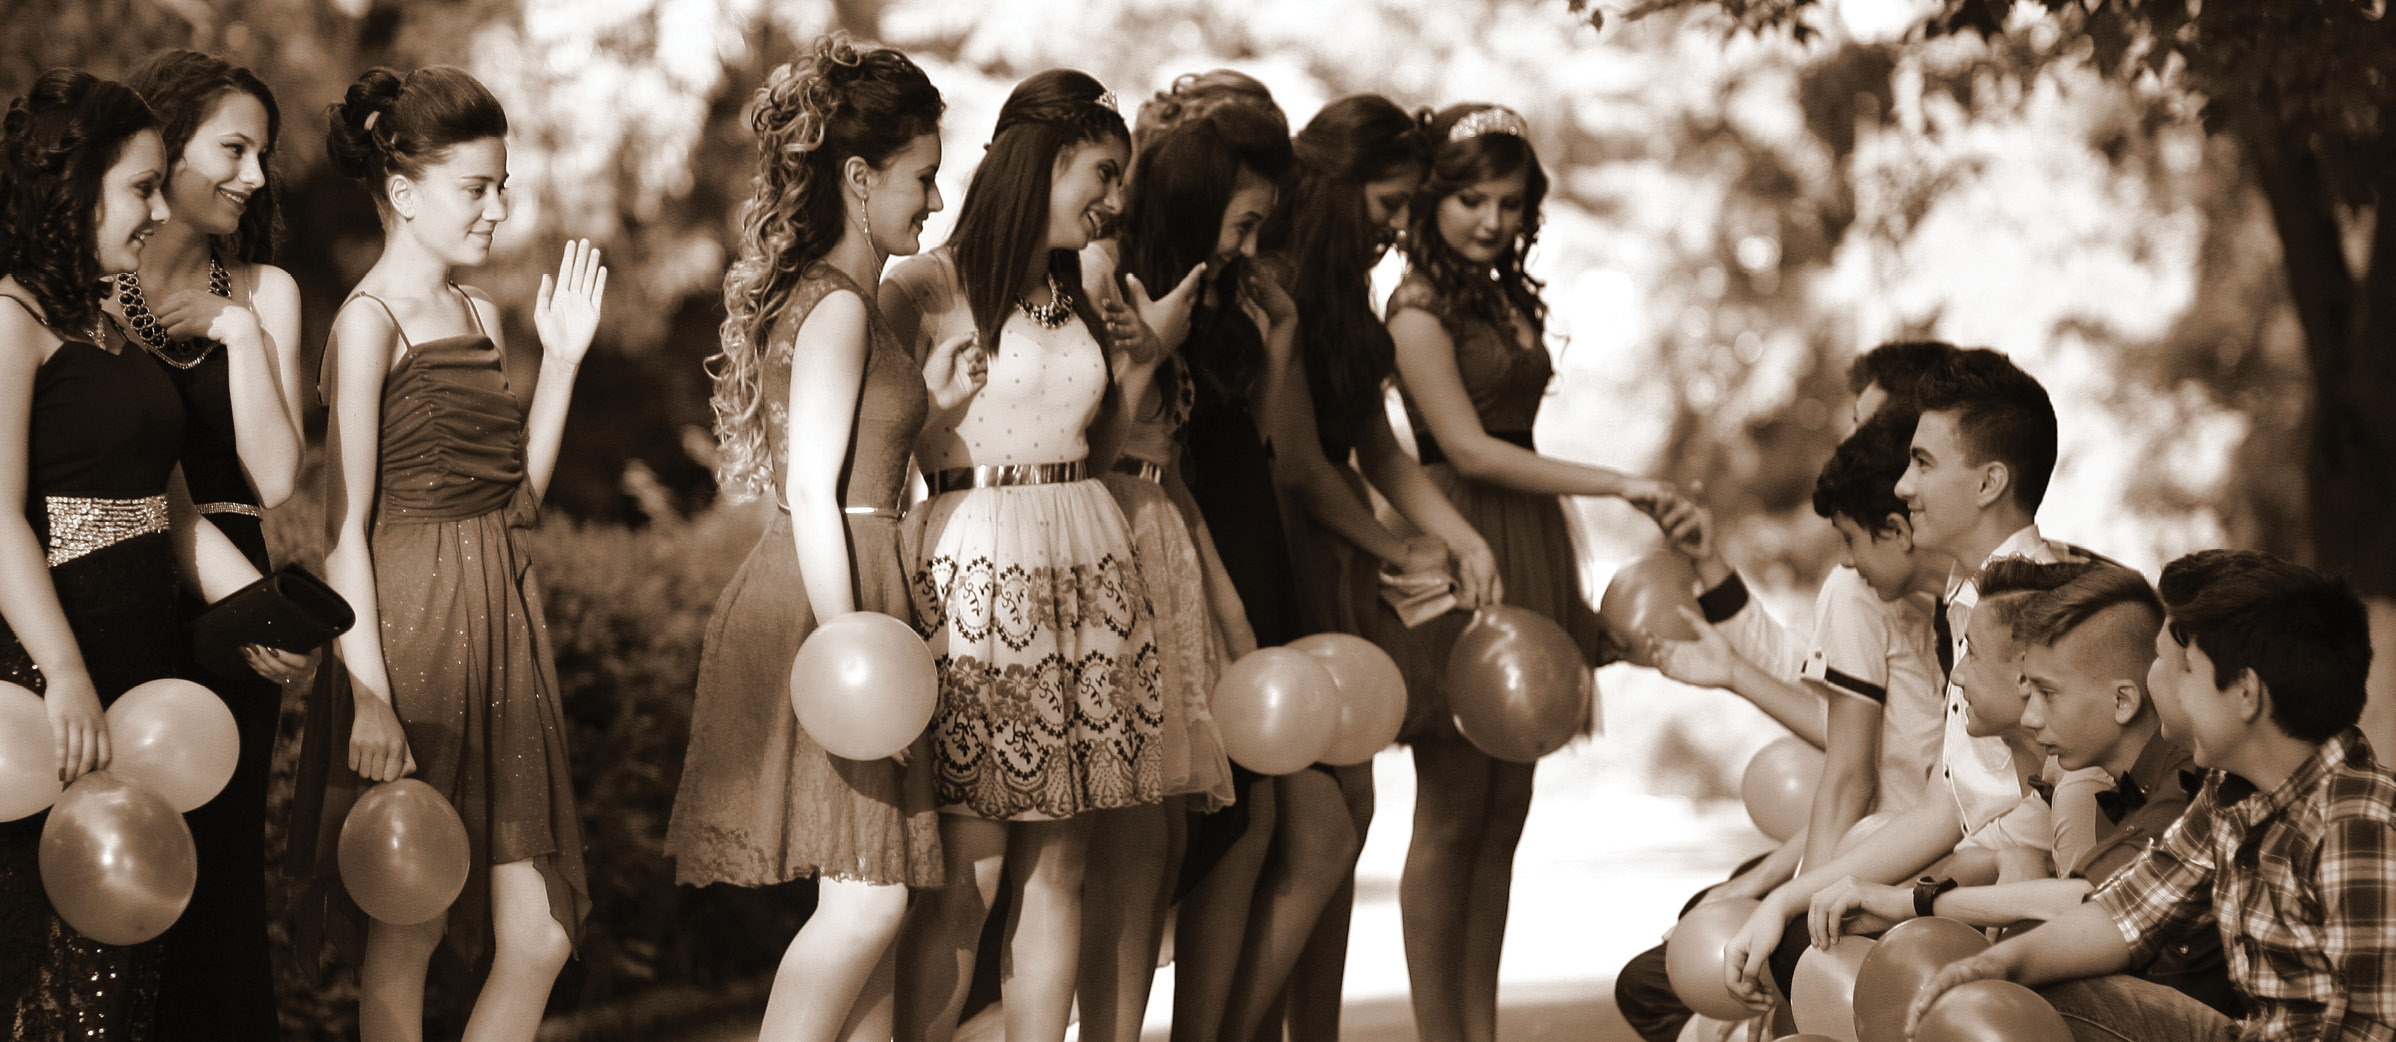 quince-group-photo-slide